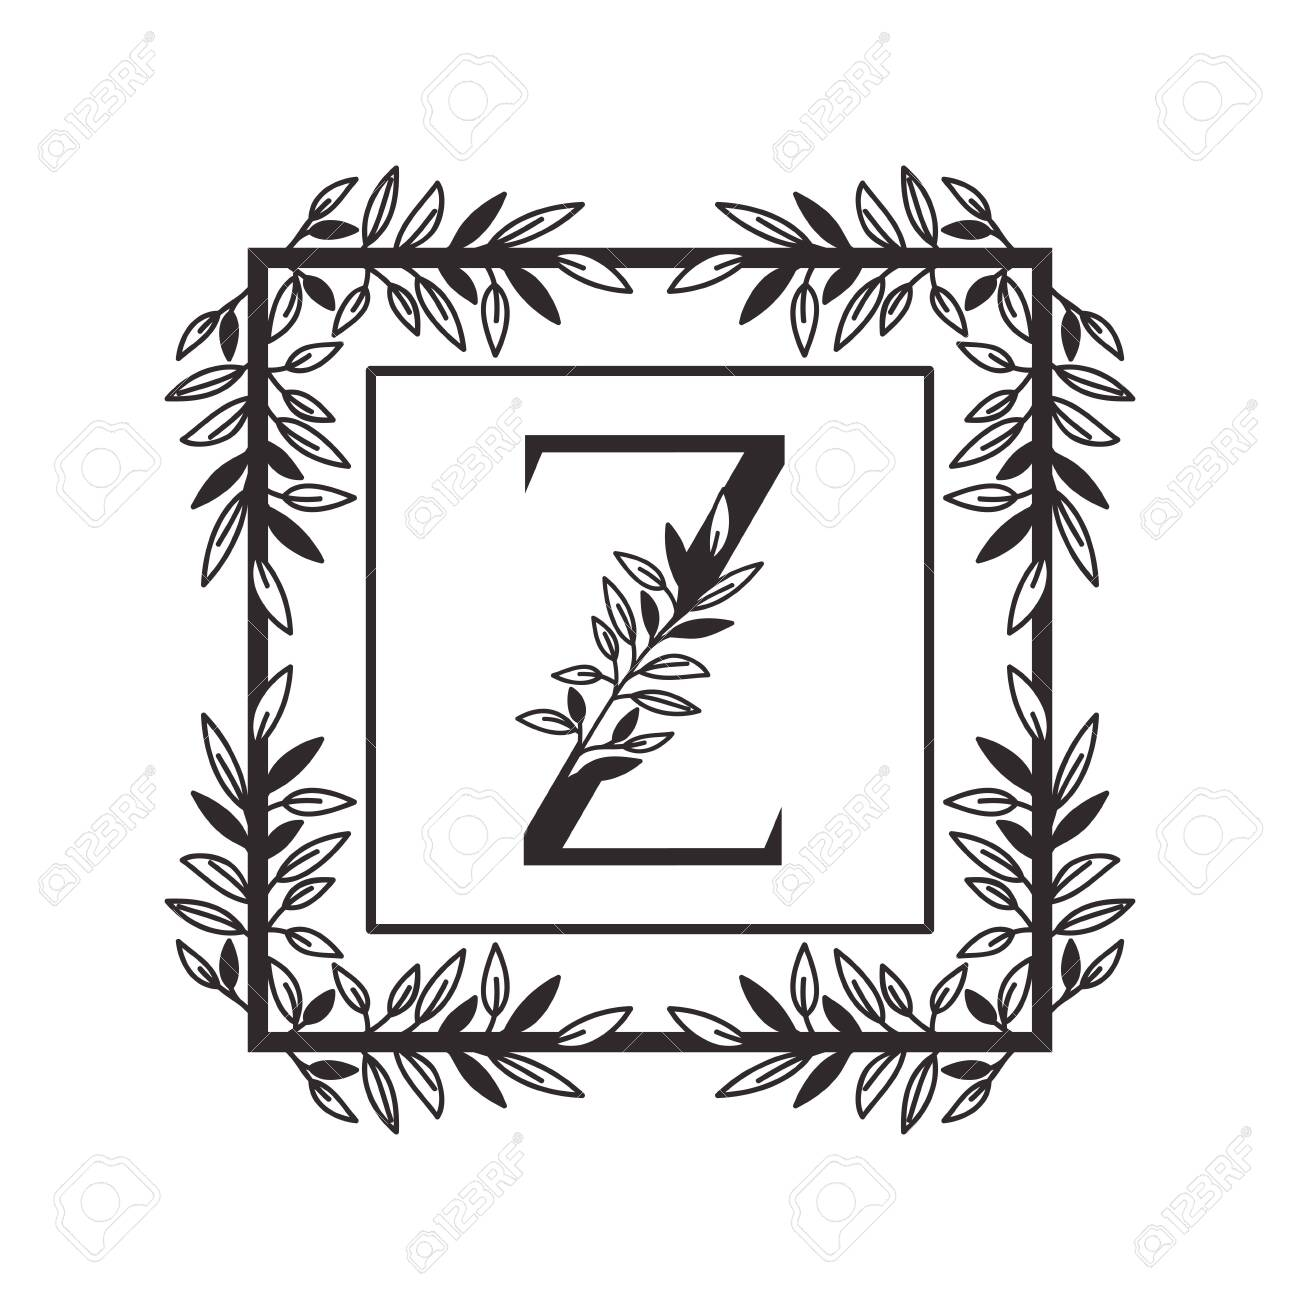 letter Z of the alphabet with vintage style frame vector illustration